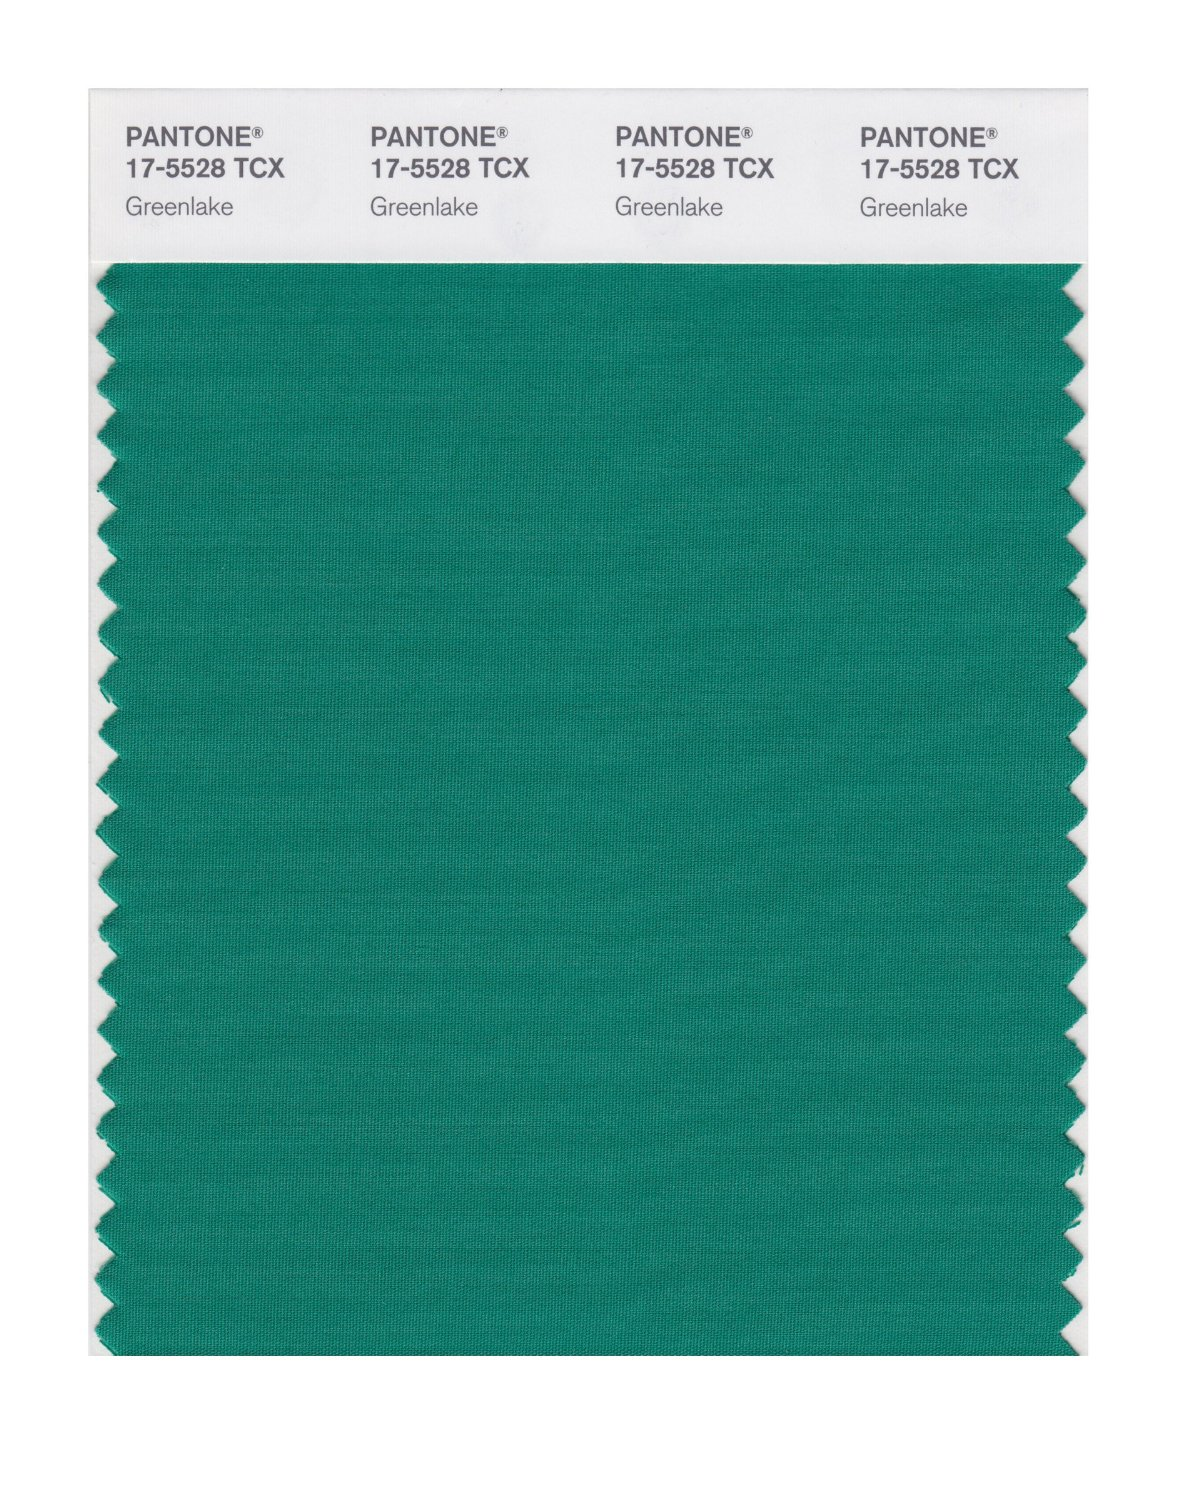 Pantone Smart Swatch 17-5528 Greenlake